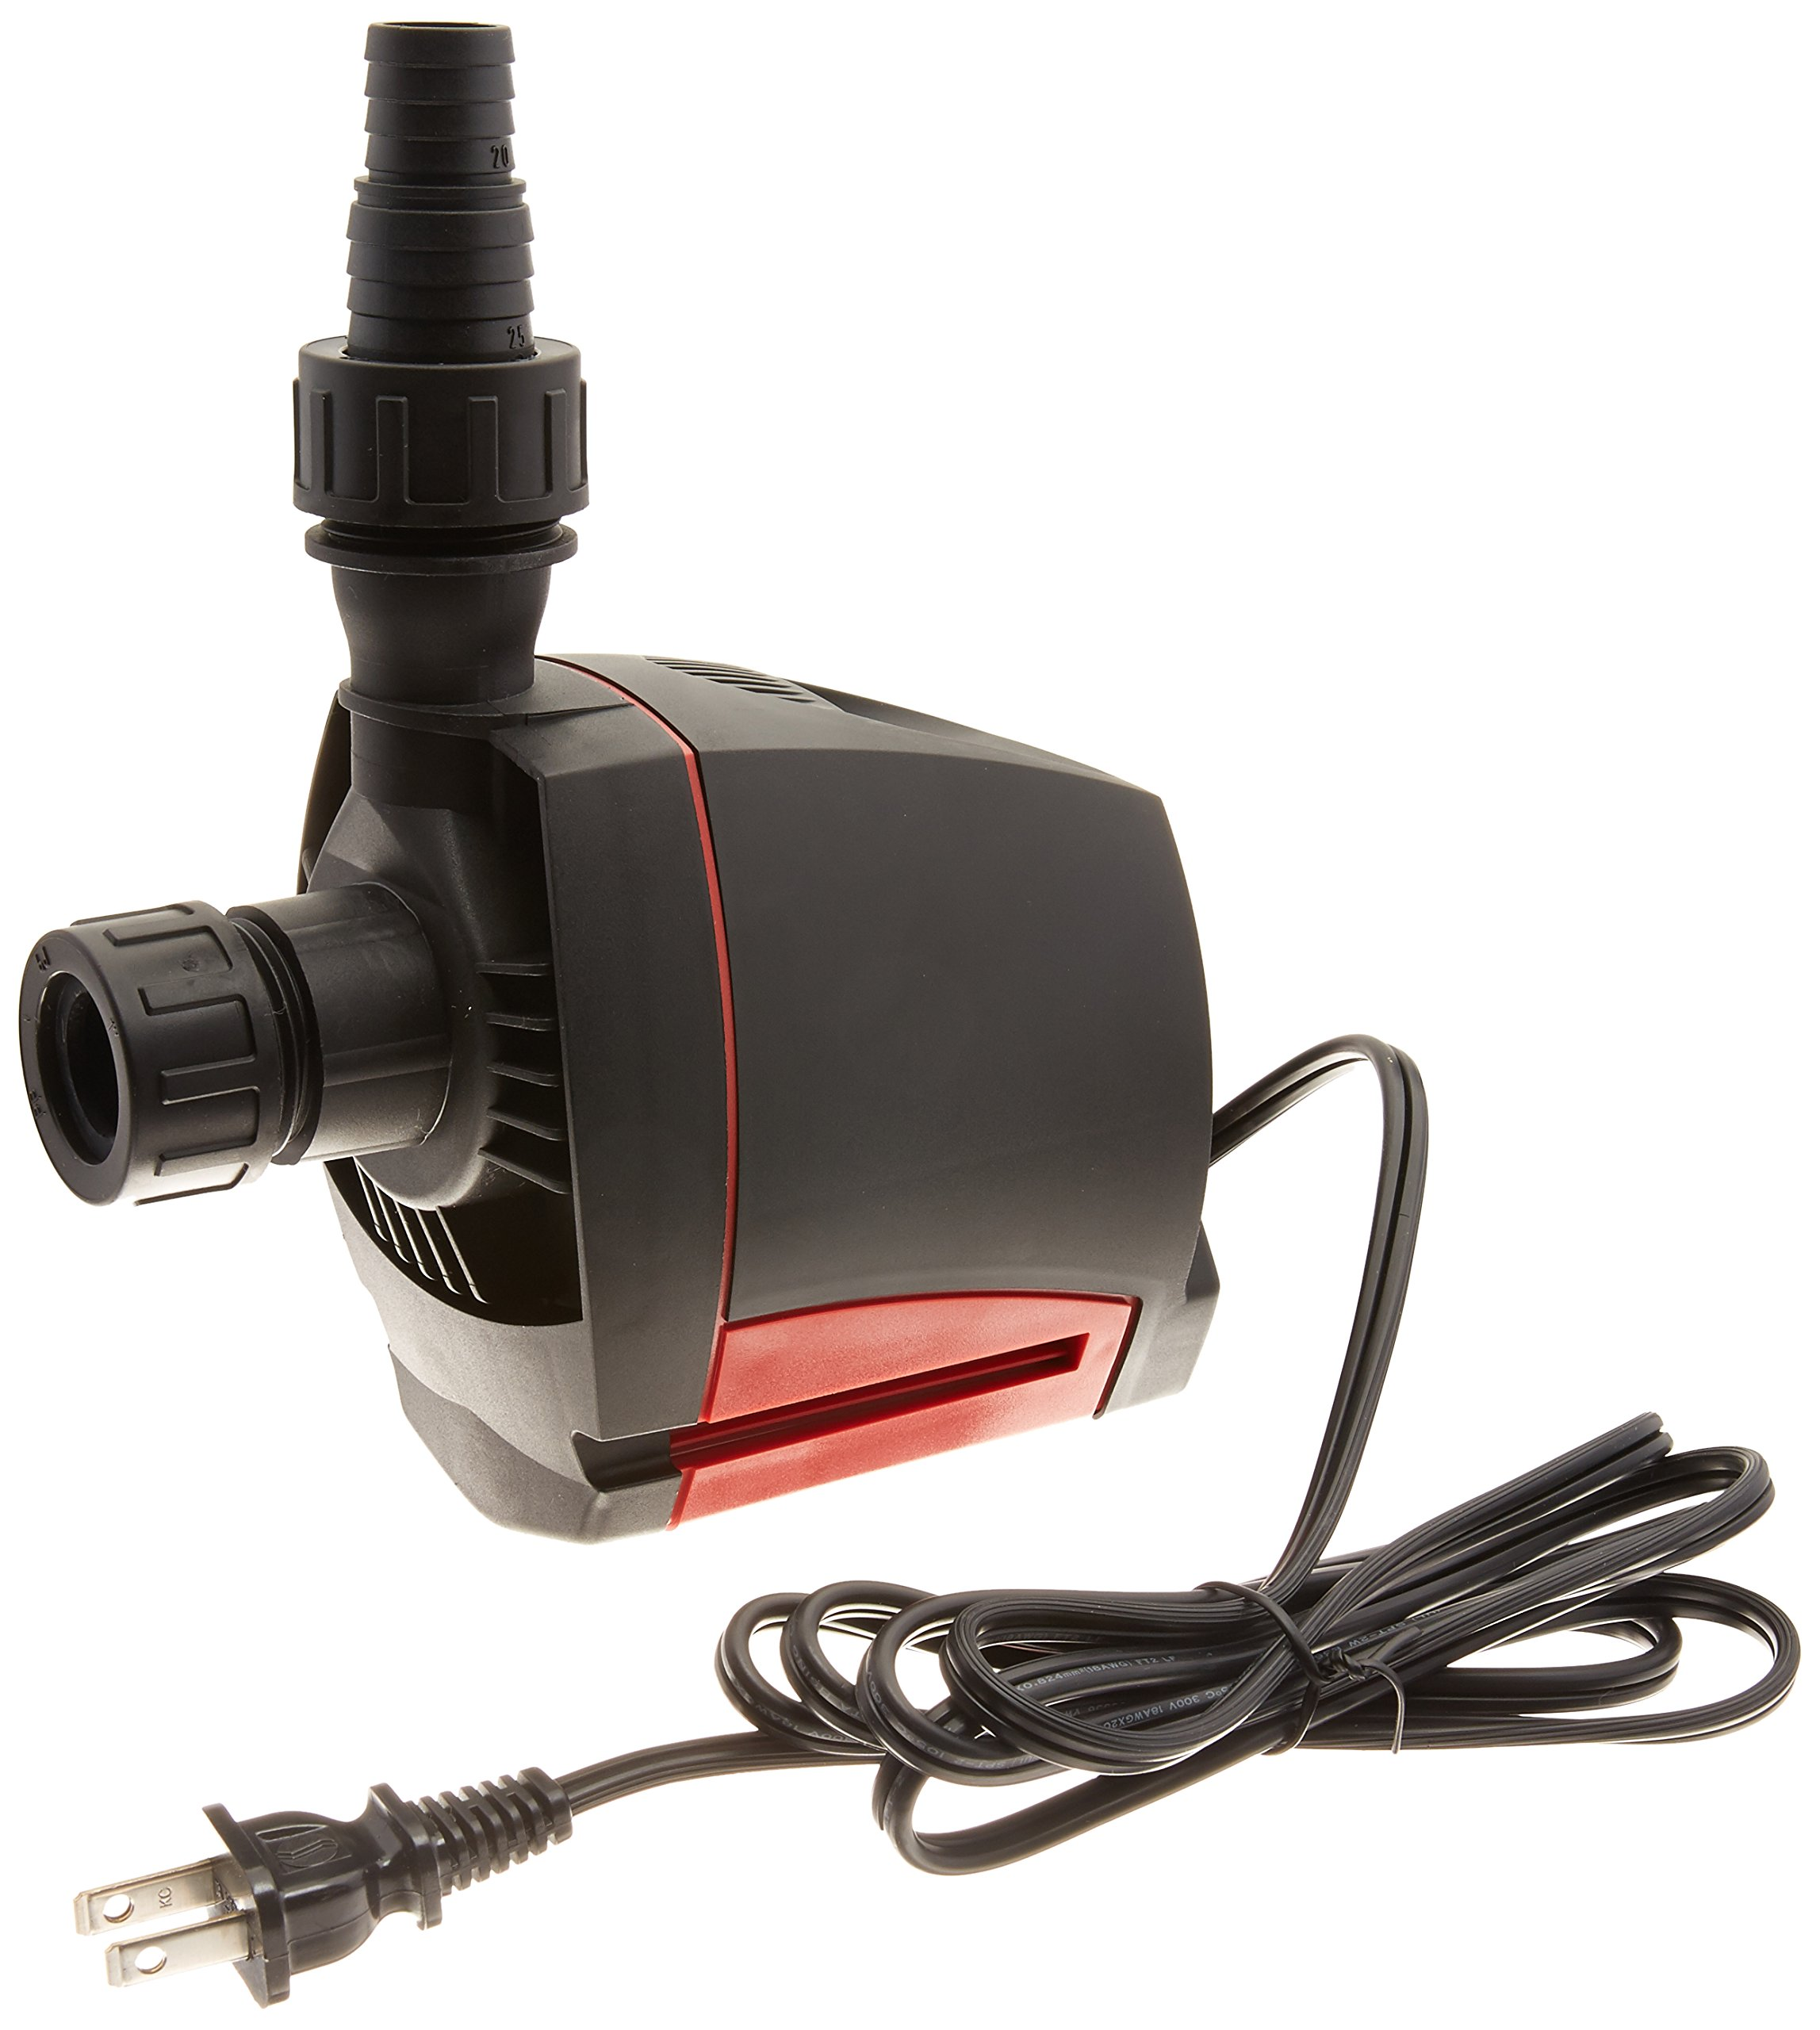 Fluval Sea SP2 Sump Pump for Aquarium by Fluval